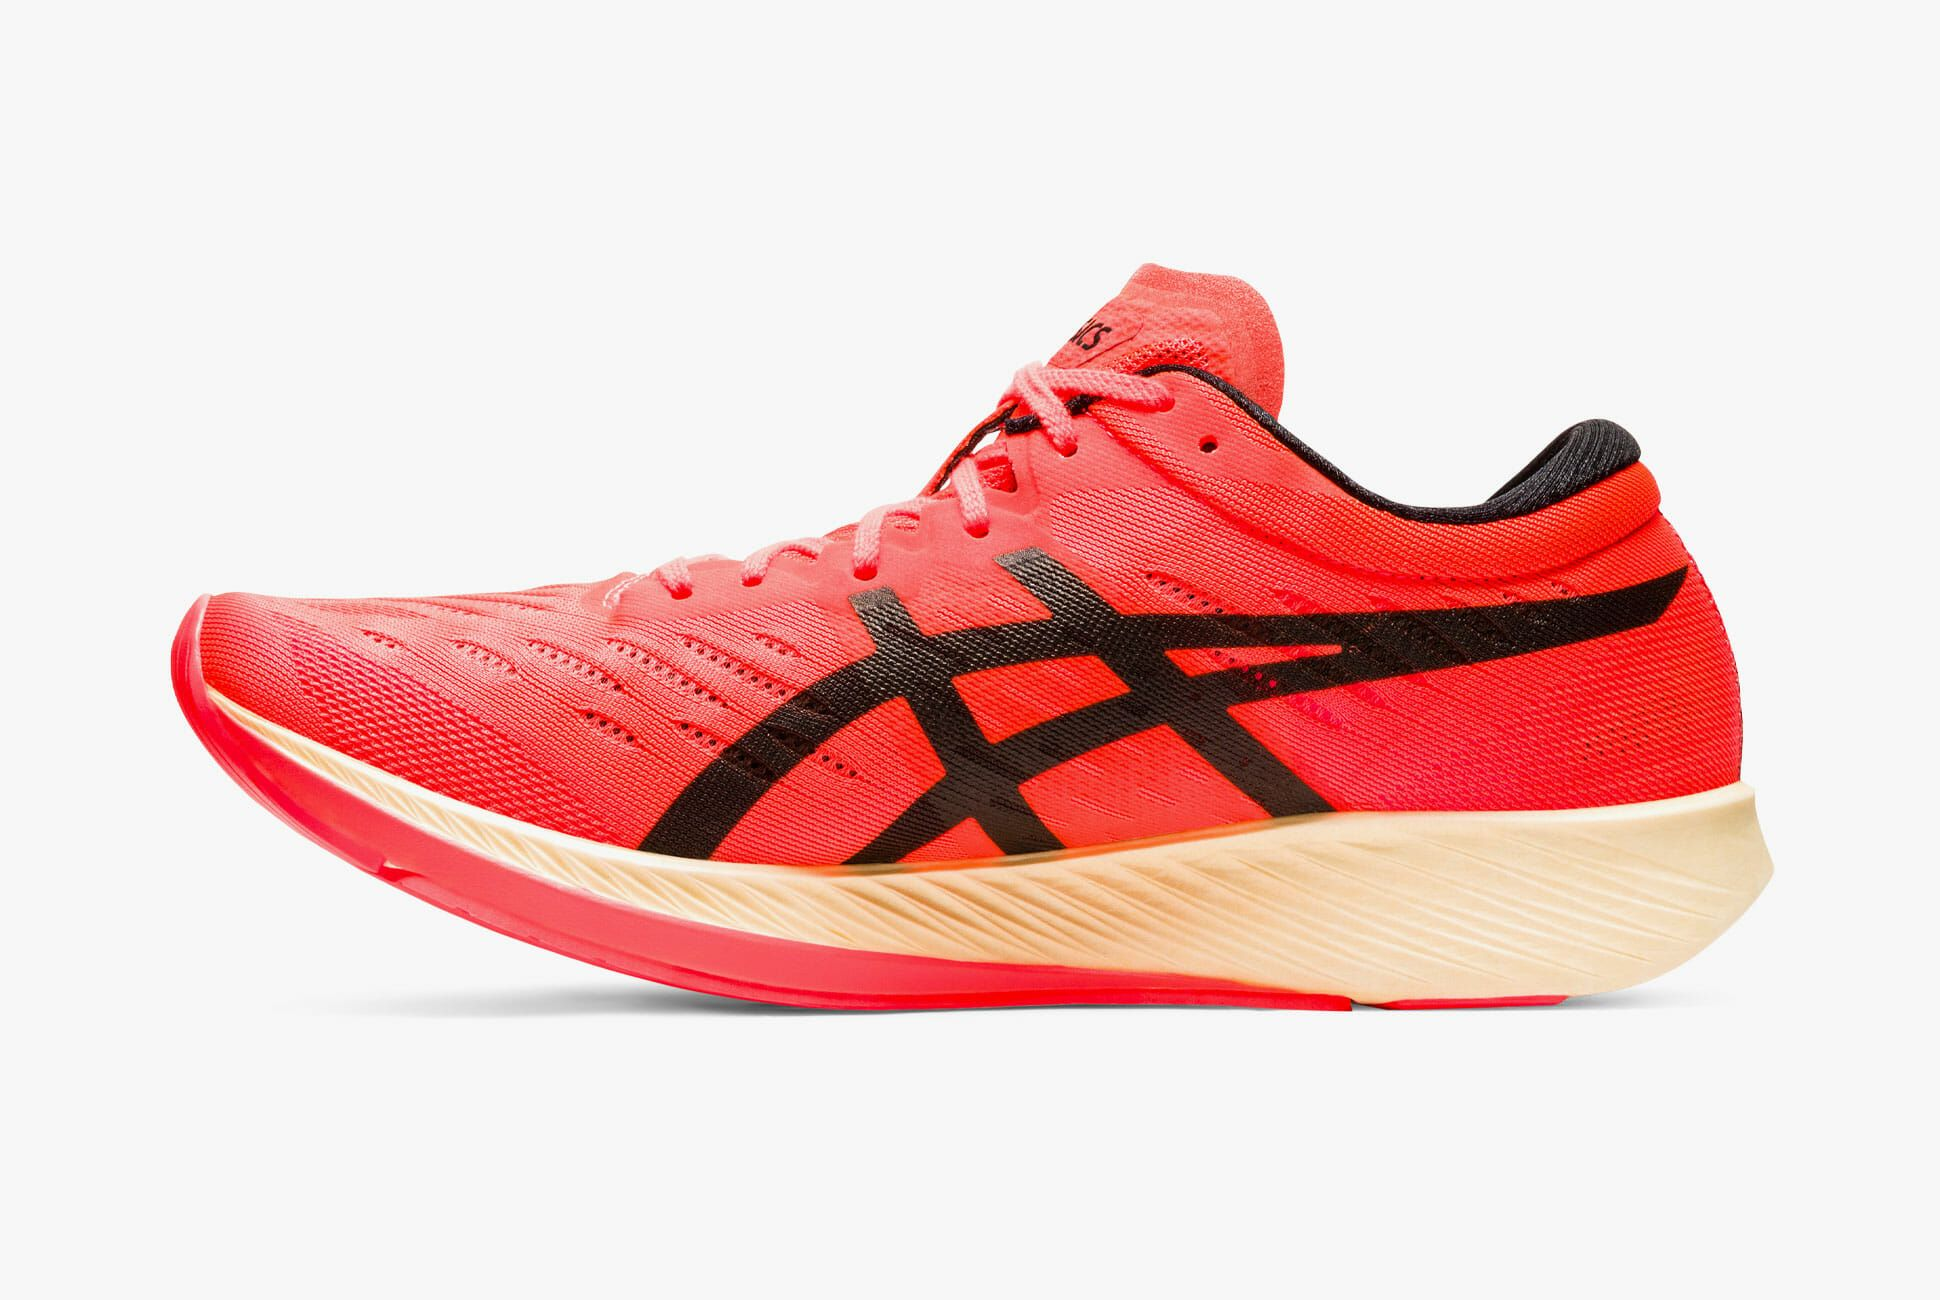 Asics's New Shoe Means More For Running